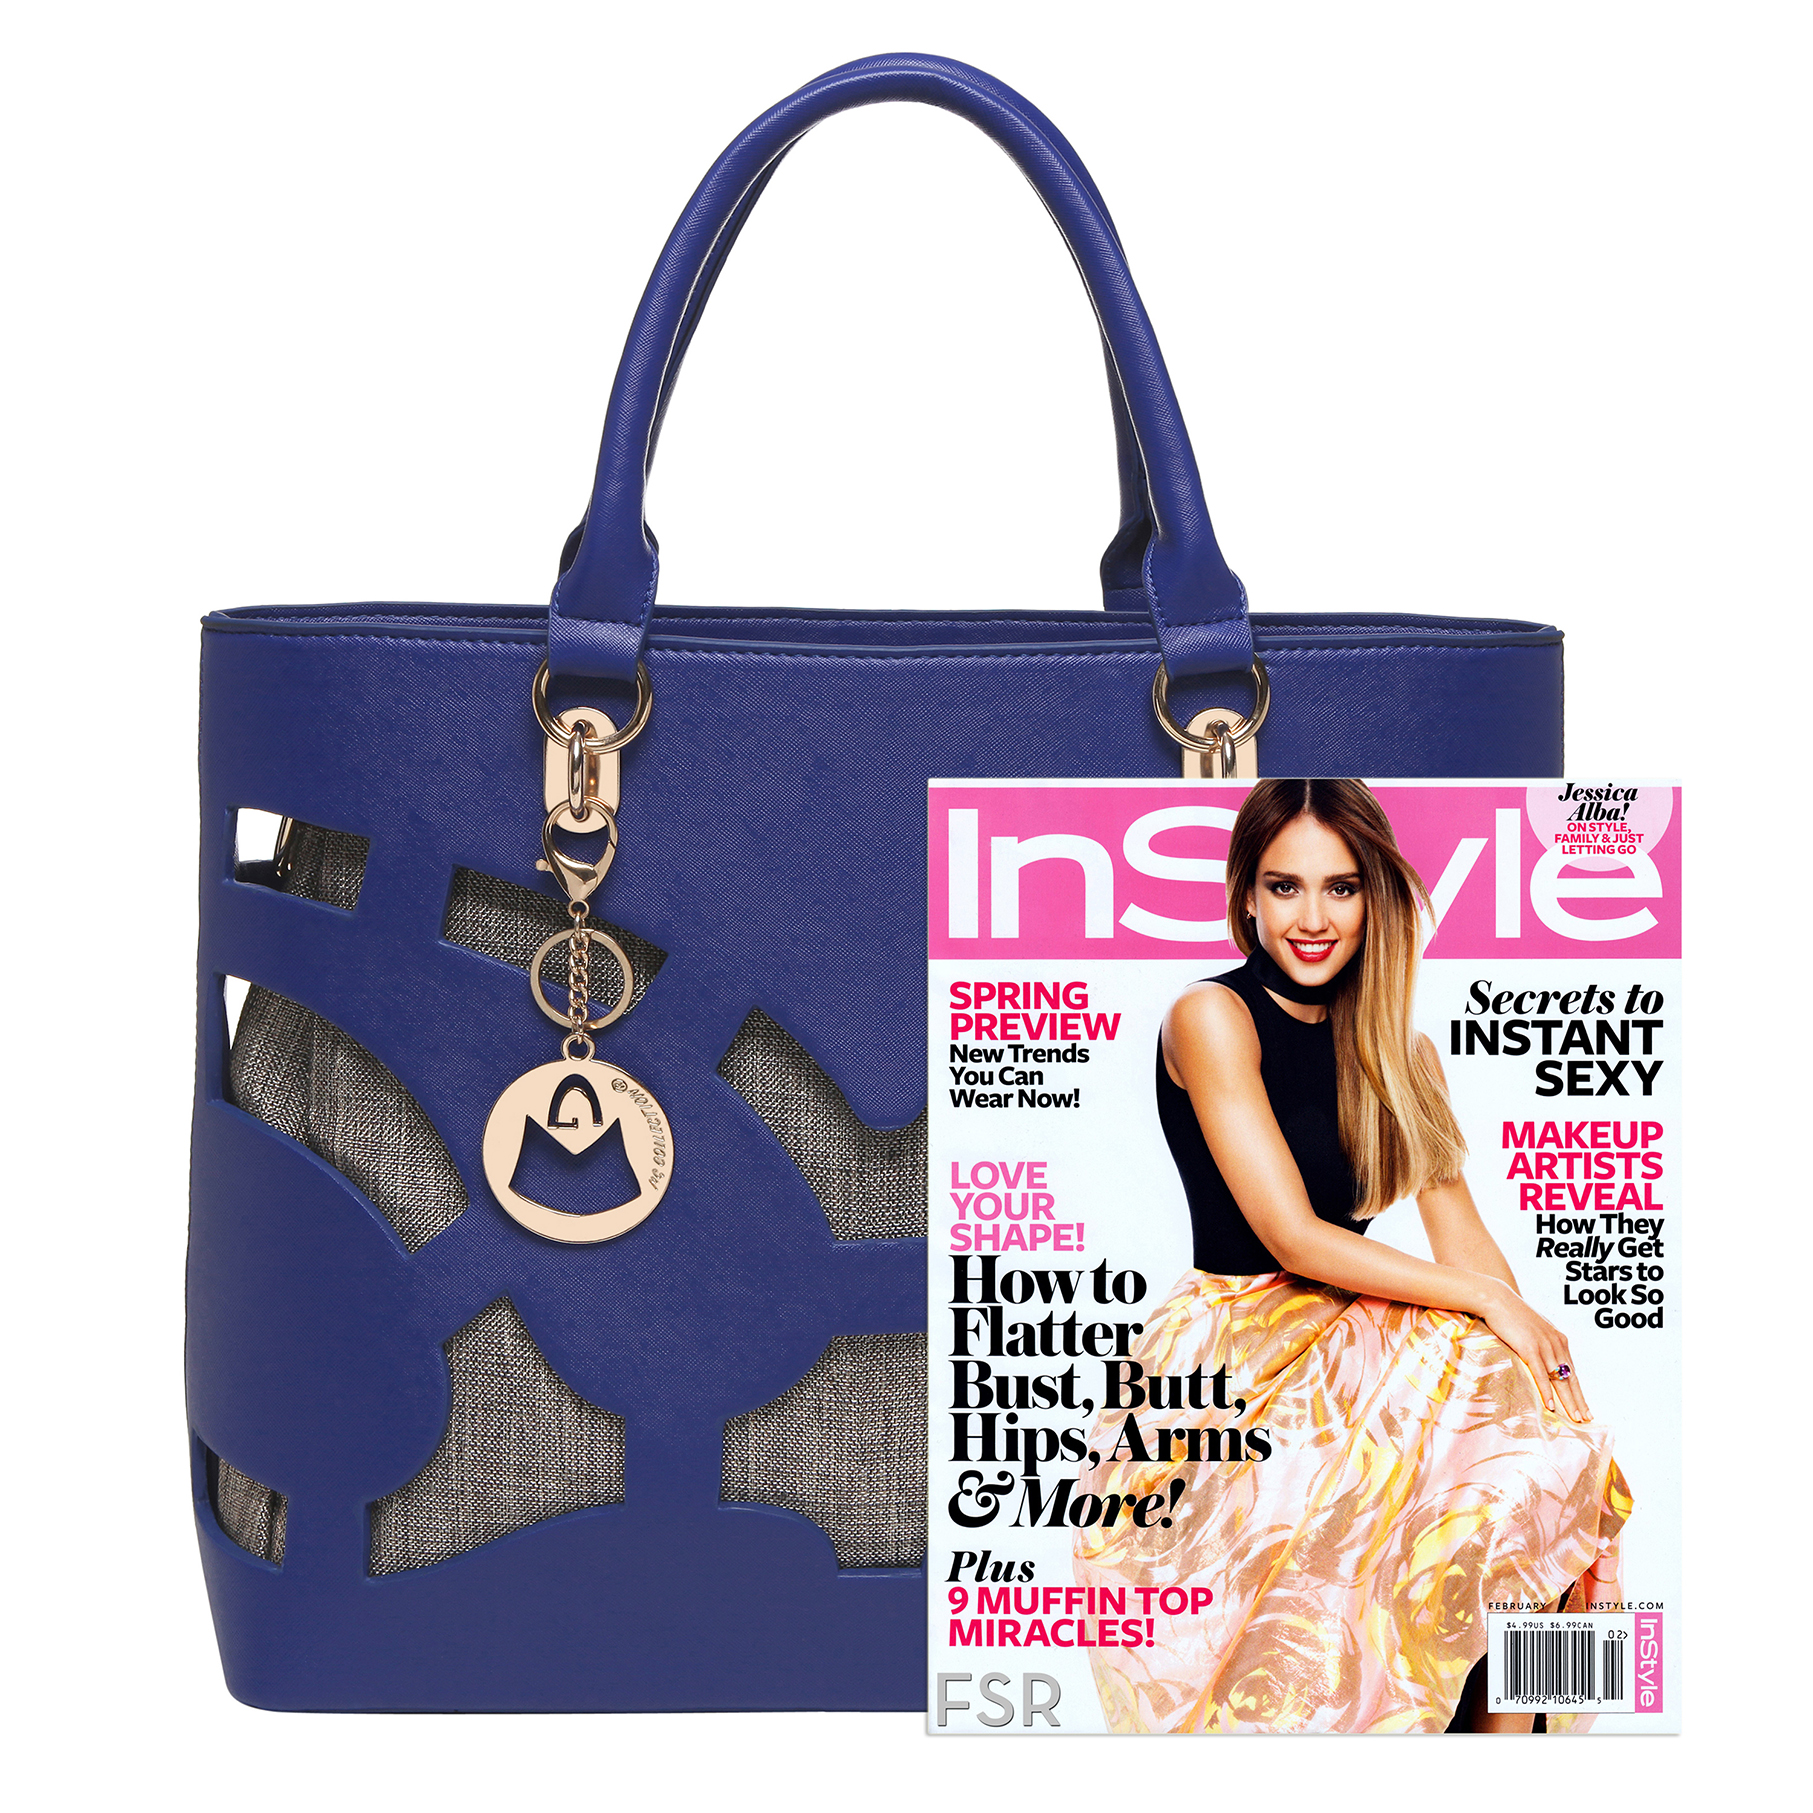 Tayla Blue 2 in 1 fashion cut out tote handbag size comparison image